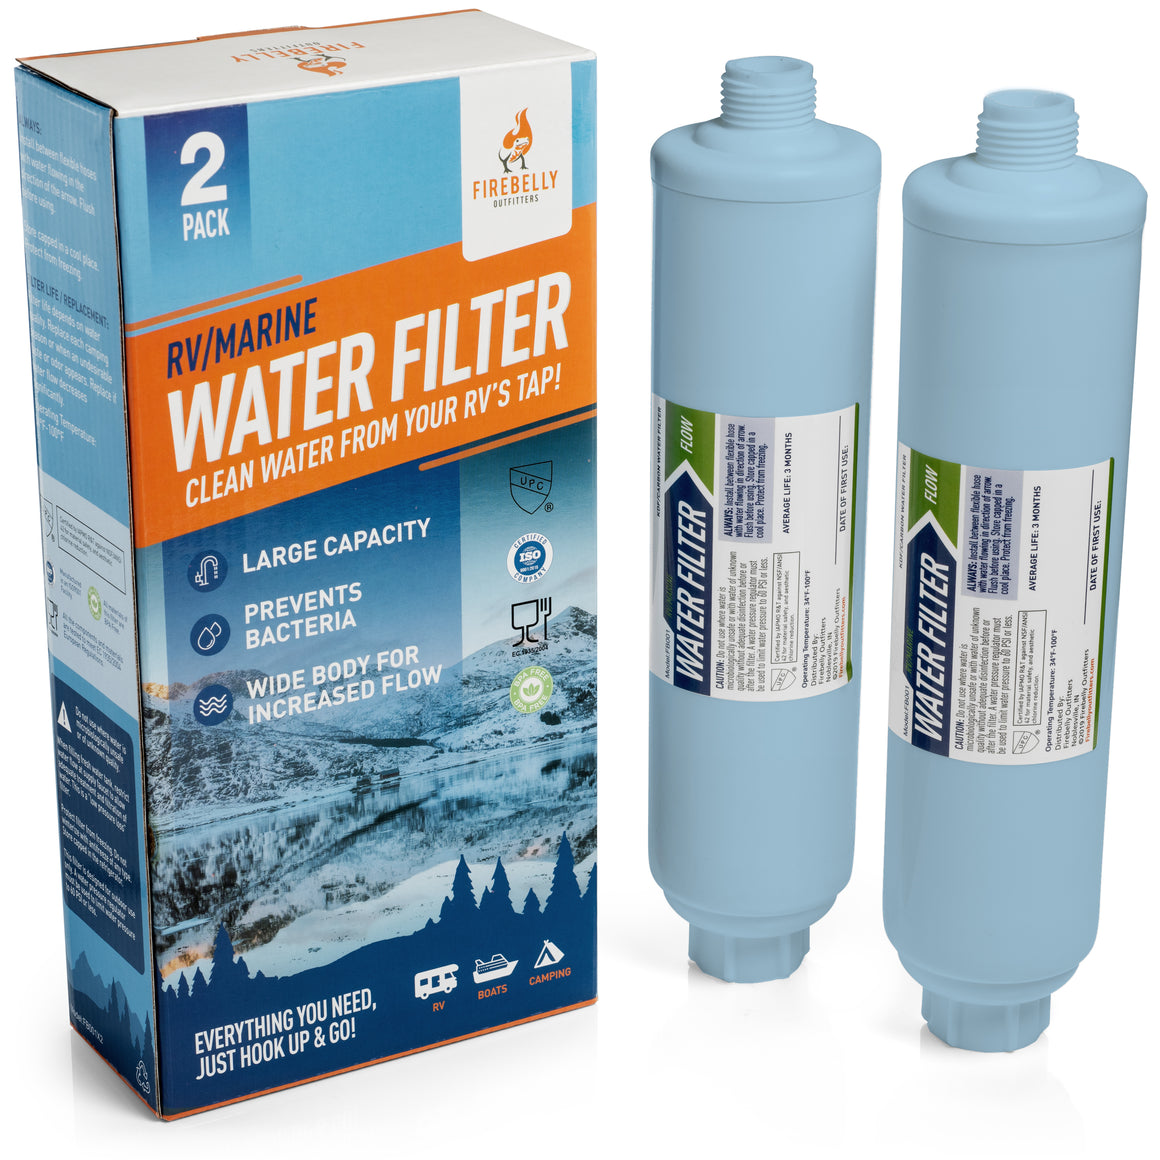 Firebelly Outfitters RV/Marine Inline Carbon Water Filter Replacement Kit (2 Pack) KDF Filtration System Protects Against Bad Taste, Odor, Iron, Lead, Mercury, Chlorine, Sediment, Mold, Fungus & More